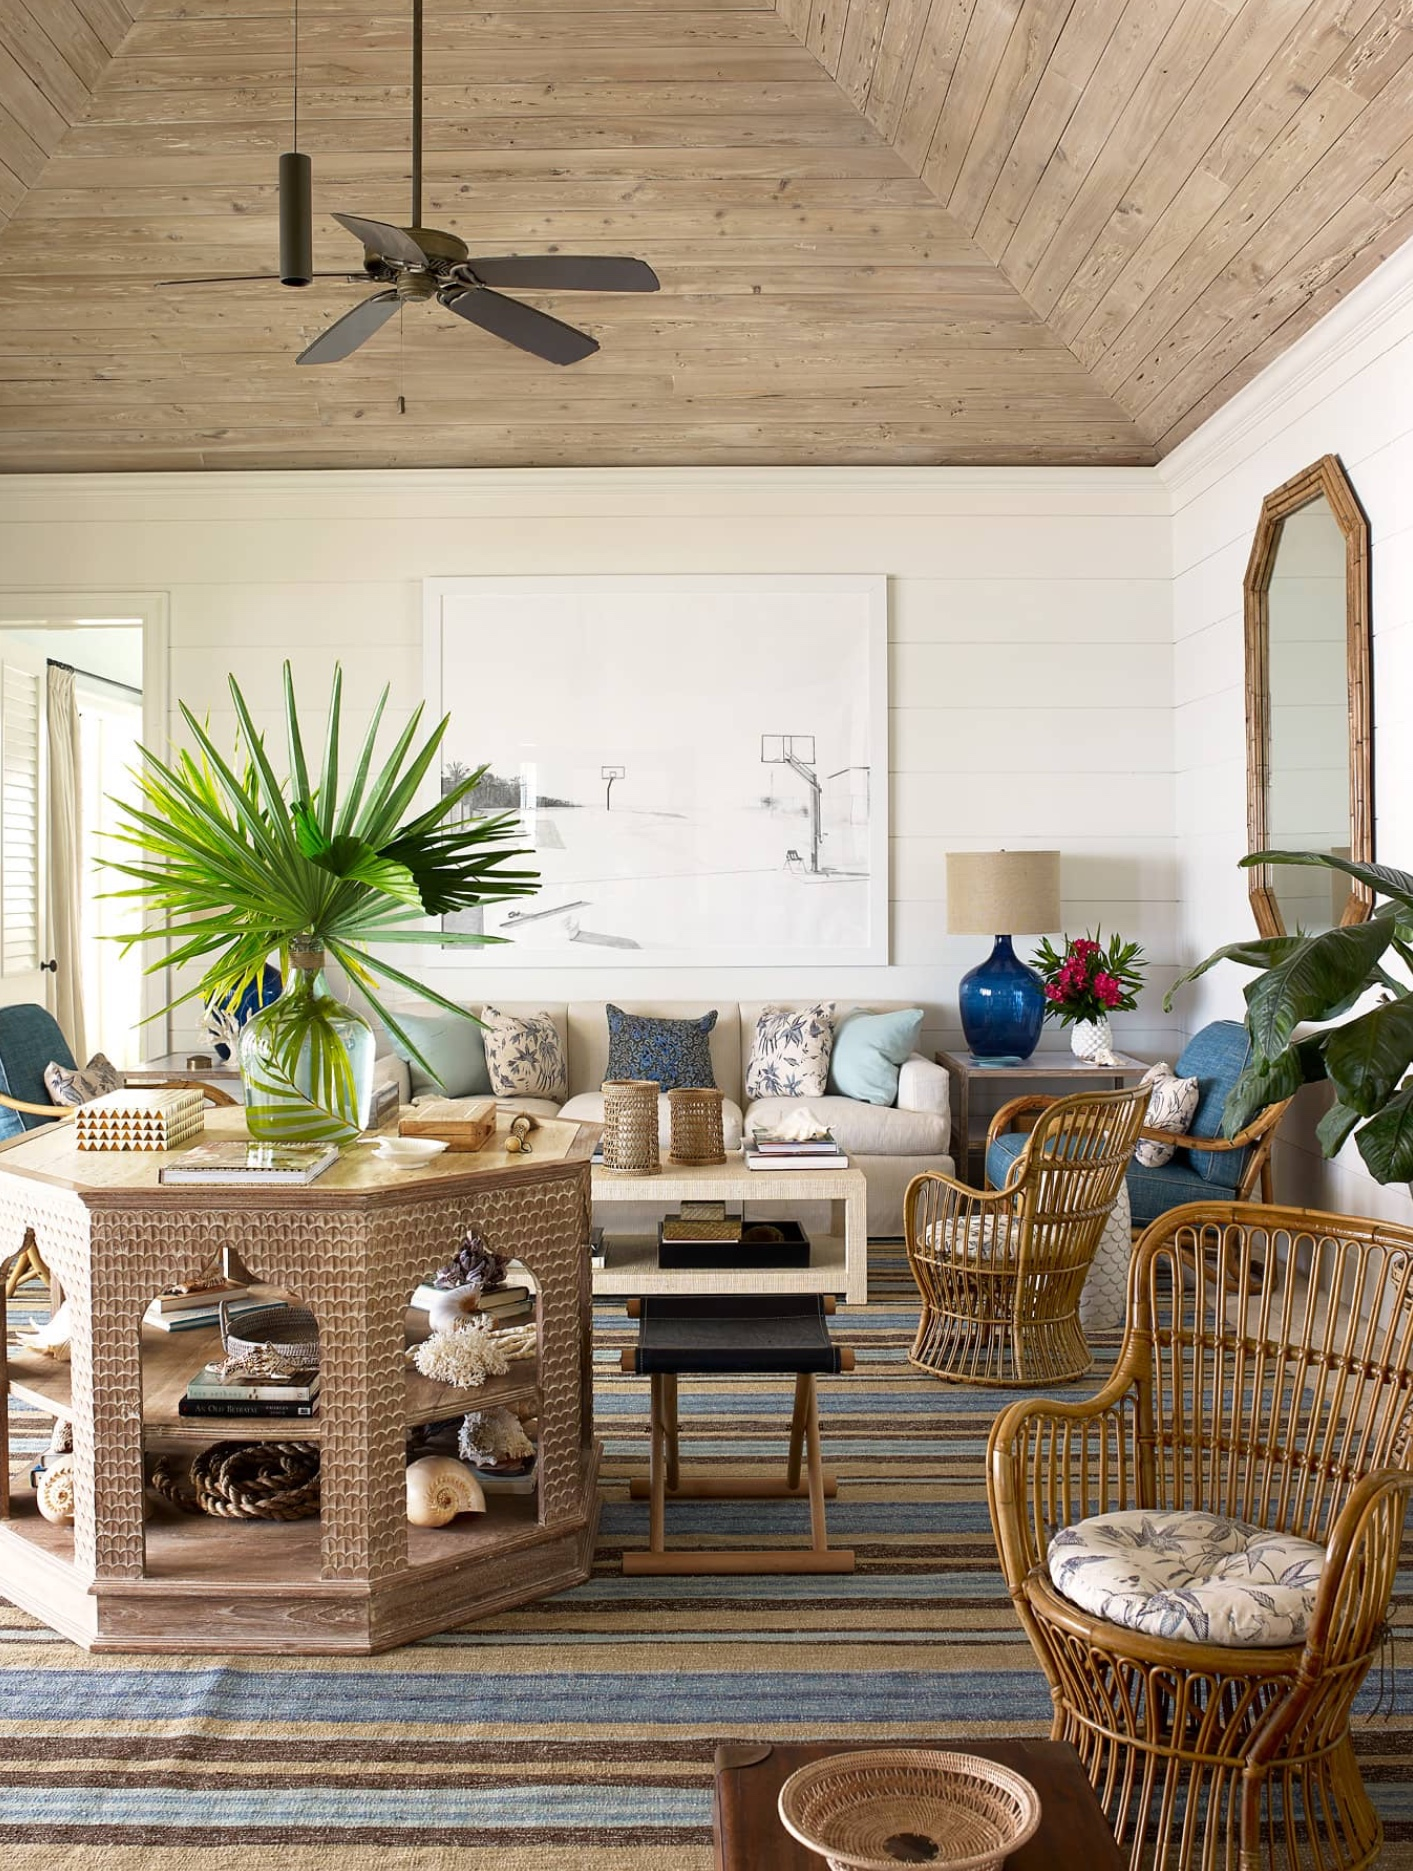 A Beach Home Decorated With Blue And Rattan Bahama Style